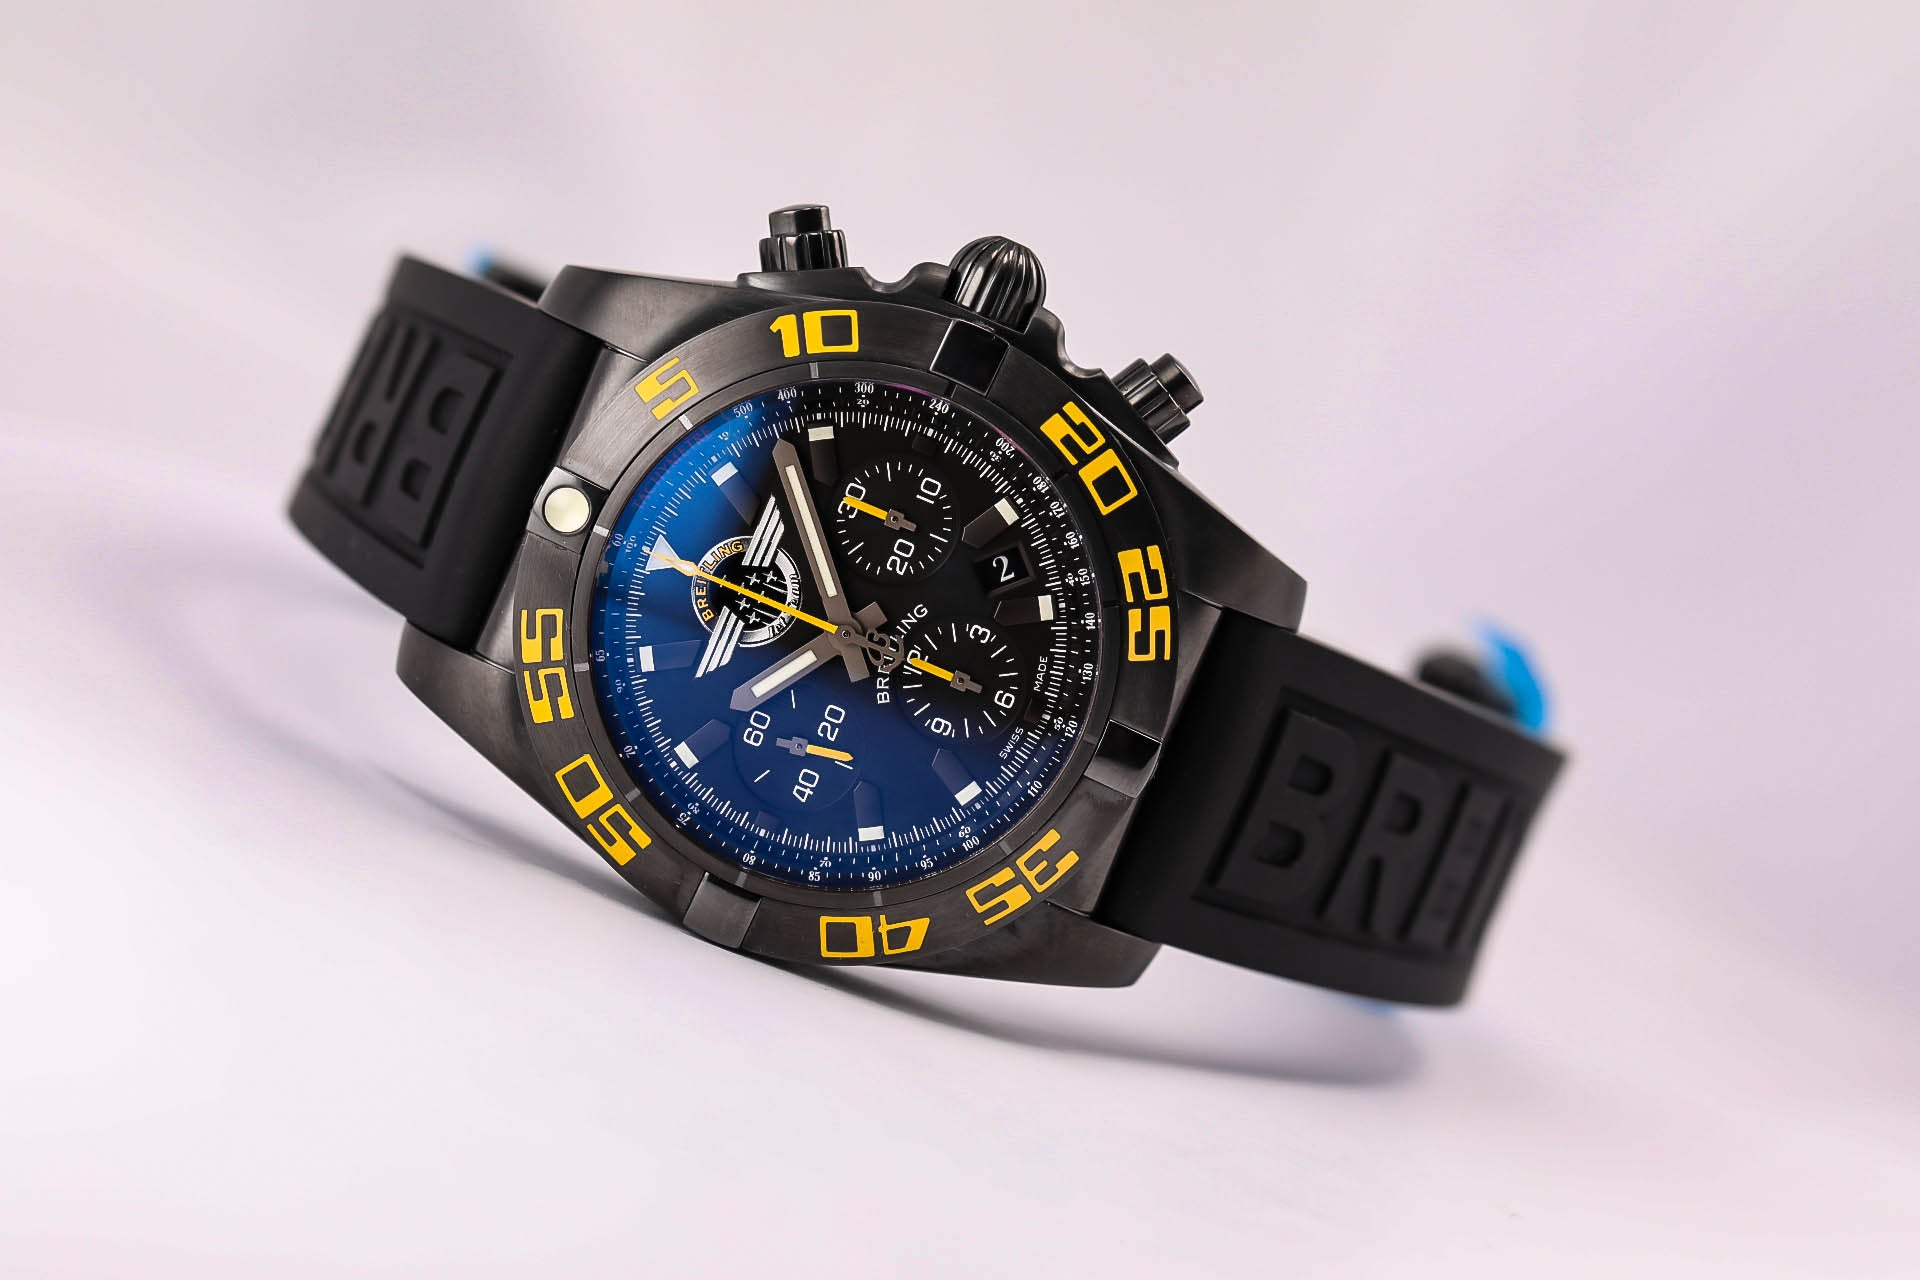 Breitling Chronomat 44 Black Jet Team Limited Edition, Ref.  MB01109P/BD48 Rubber Pro III Strap and Black Micro Adjustment Folding Buckle